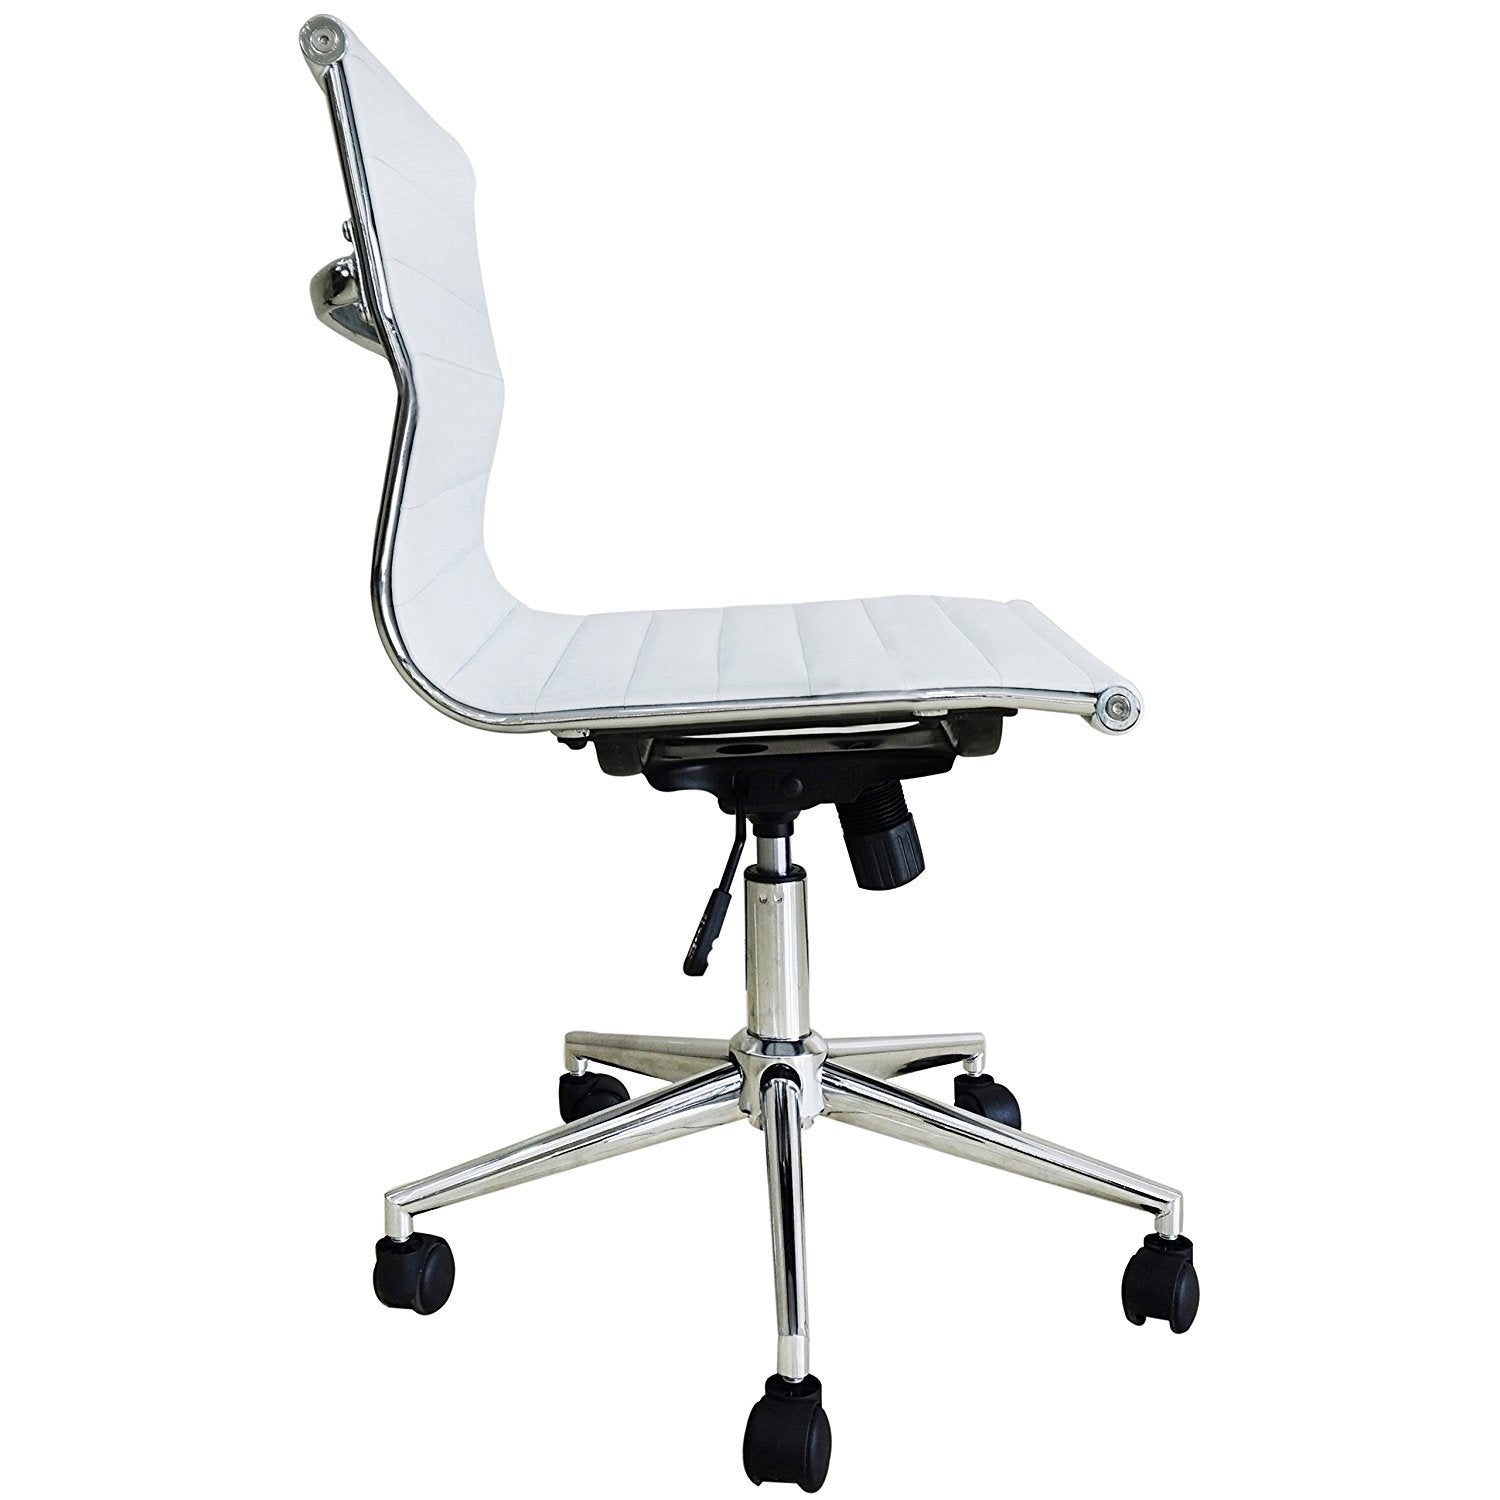 2xhome Modern Mid Back fice Chair White Armless Adjustable Seat